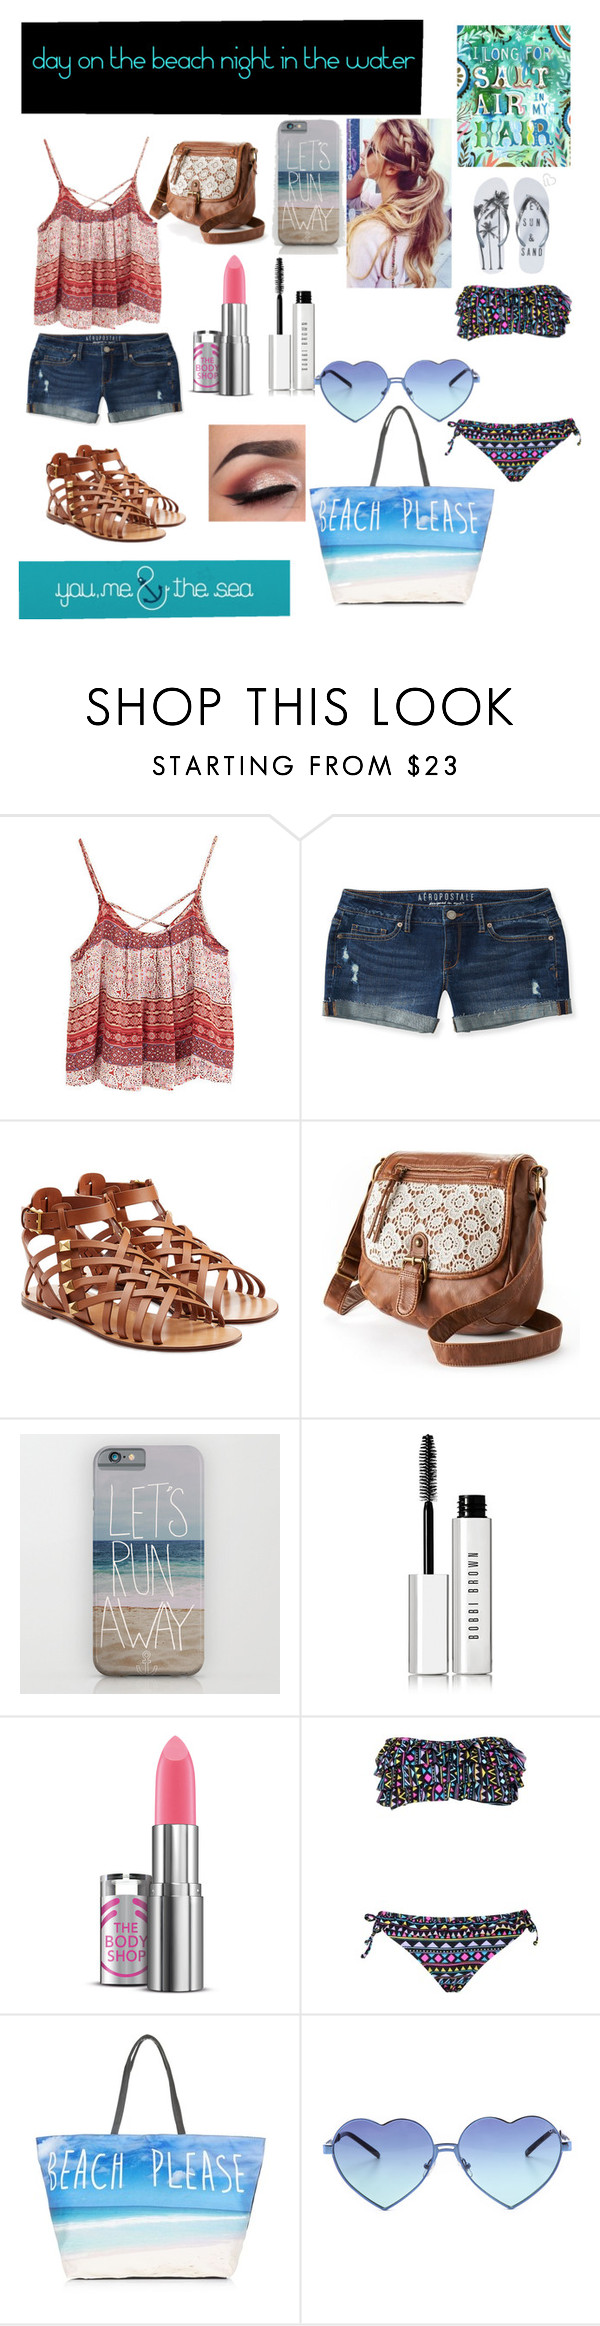 """""""day on the beach night on the water"""" by grunge-girl-on-fleek ❤ liked on Polyvore featuring Aéropostale, Valentino, Mudd, Bobbi Brown Cosmetics, Boohoo and Wildfox"""